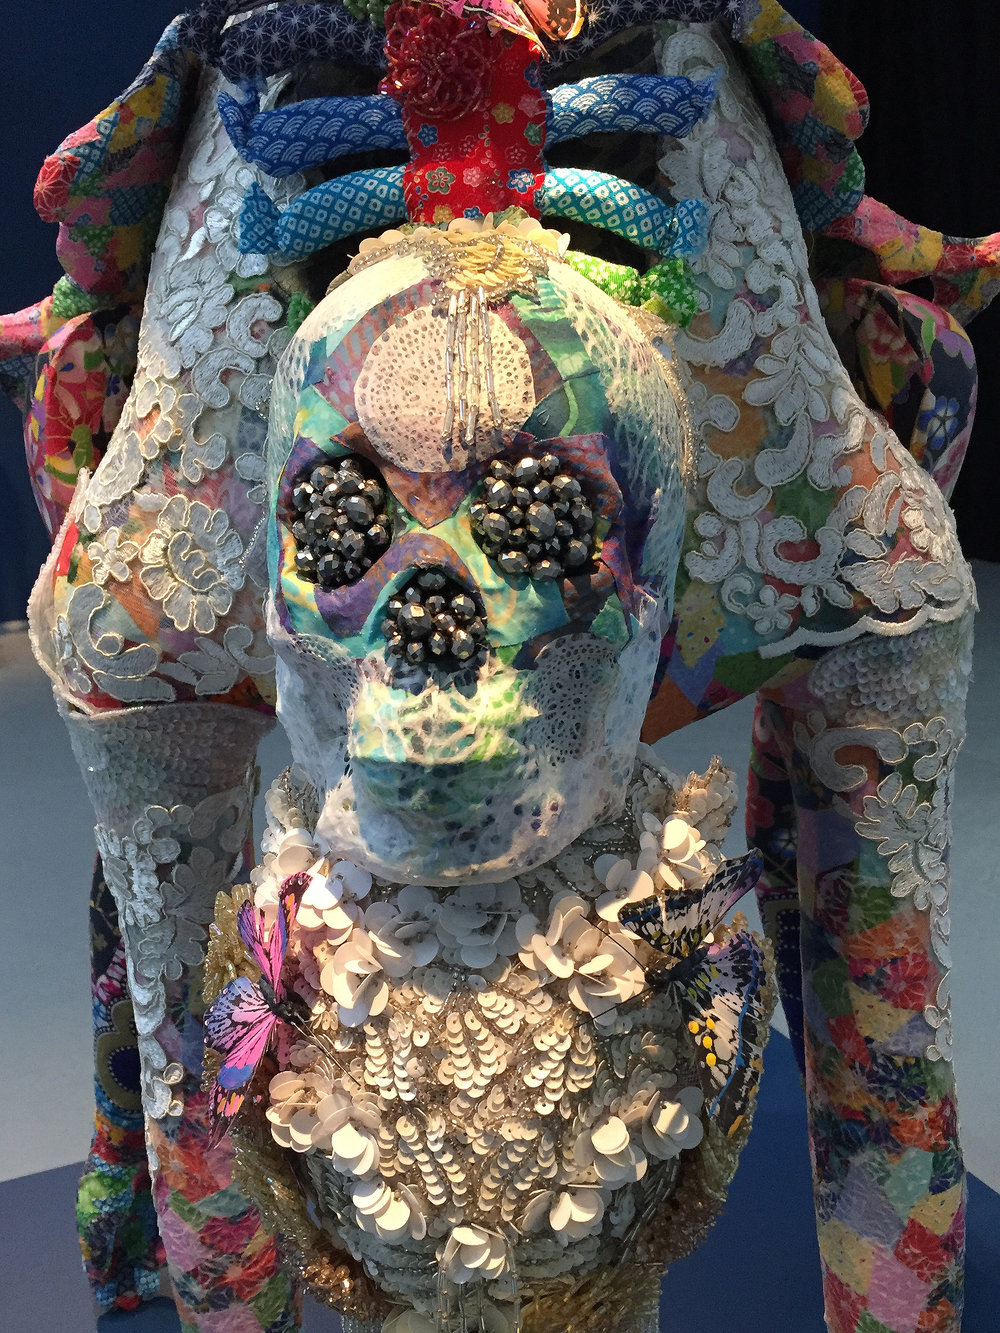 Saya Woolfalk, ChimaCloud Crystal Body B, 2017 (Detail View), Mixed Media 56 x 18 x 43 inches. Copyright Saya Woolfalk, courtesy Leslie Tonkonow Artworks + Projects, New York